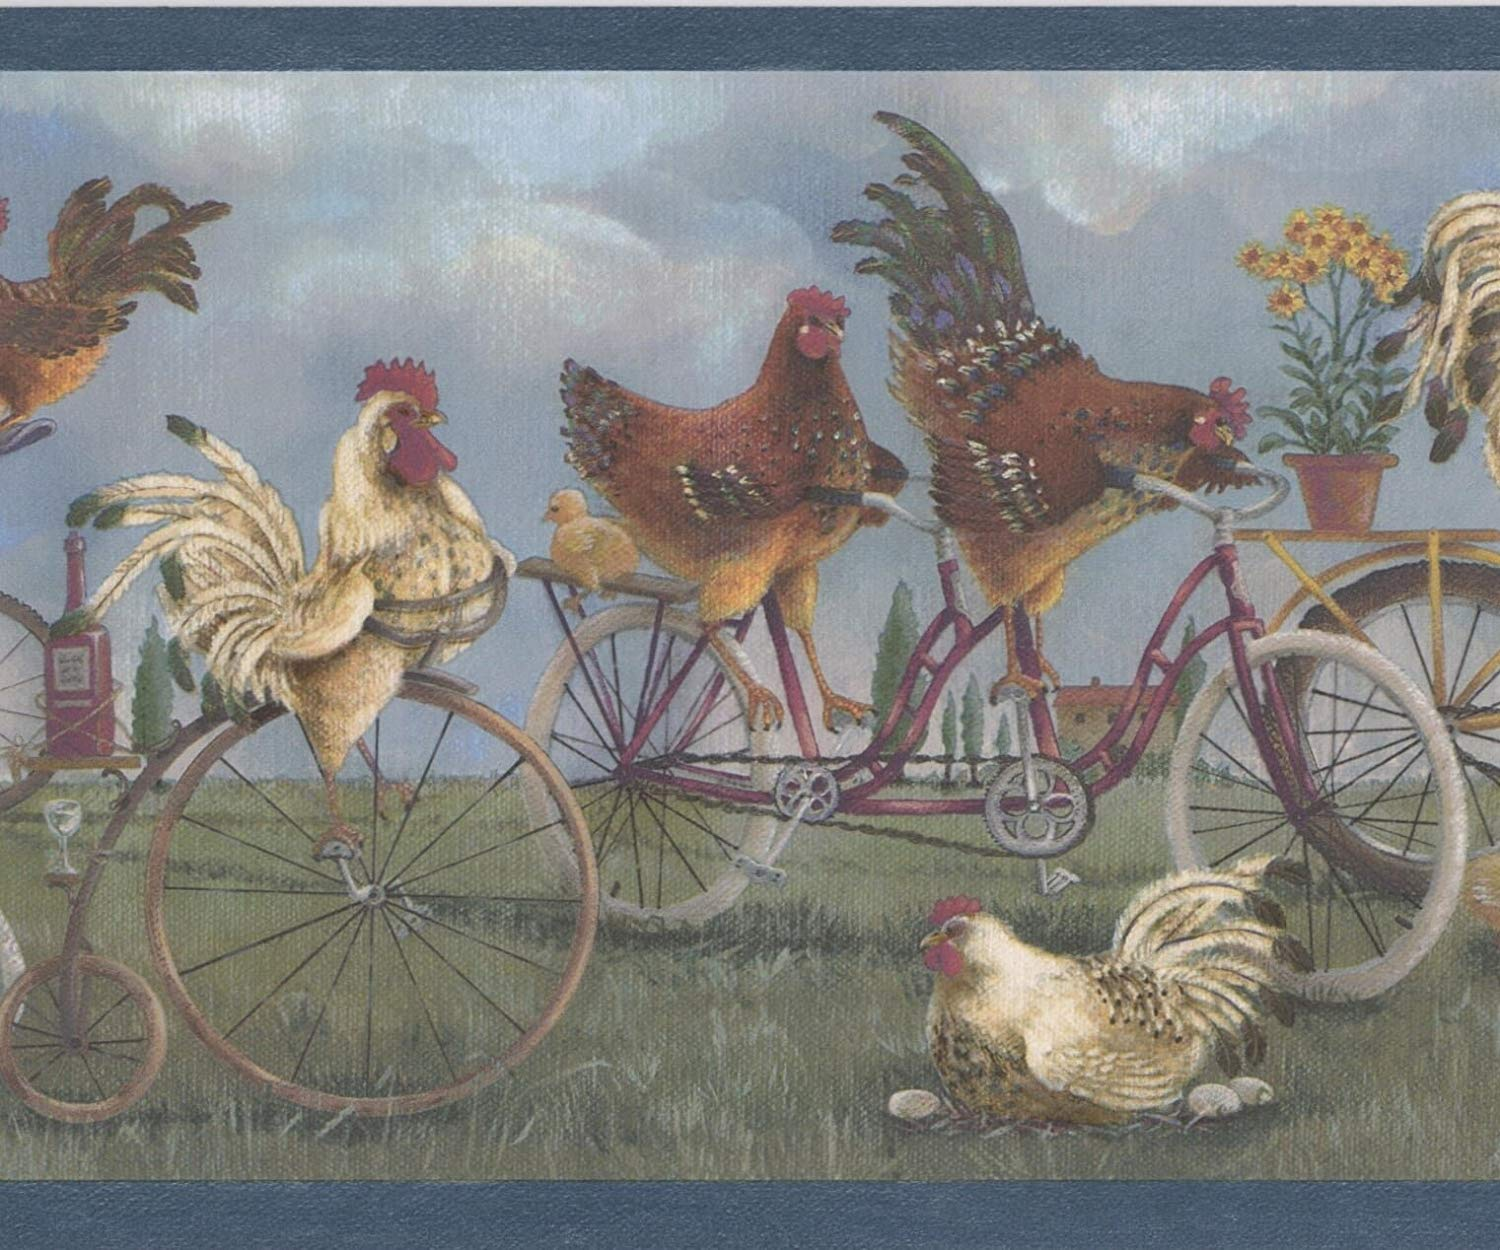 White Roosters Brown Hens on Bikes Vintage Wallpaper Border Retro 1500x1250